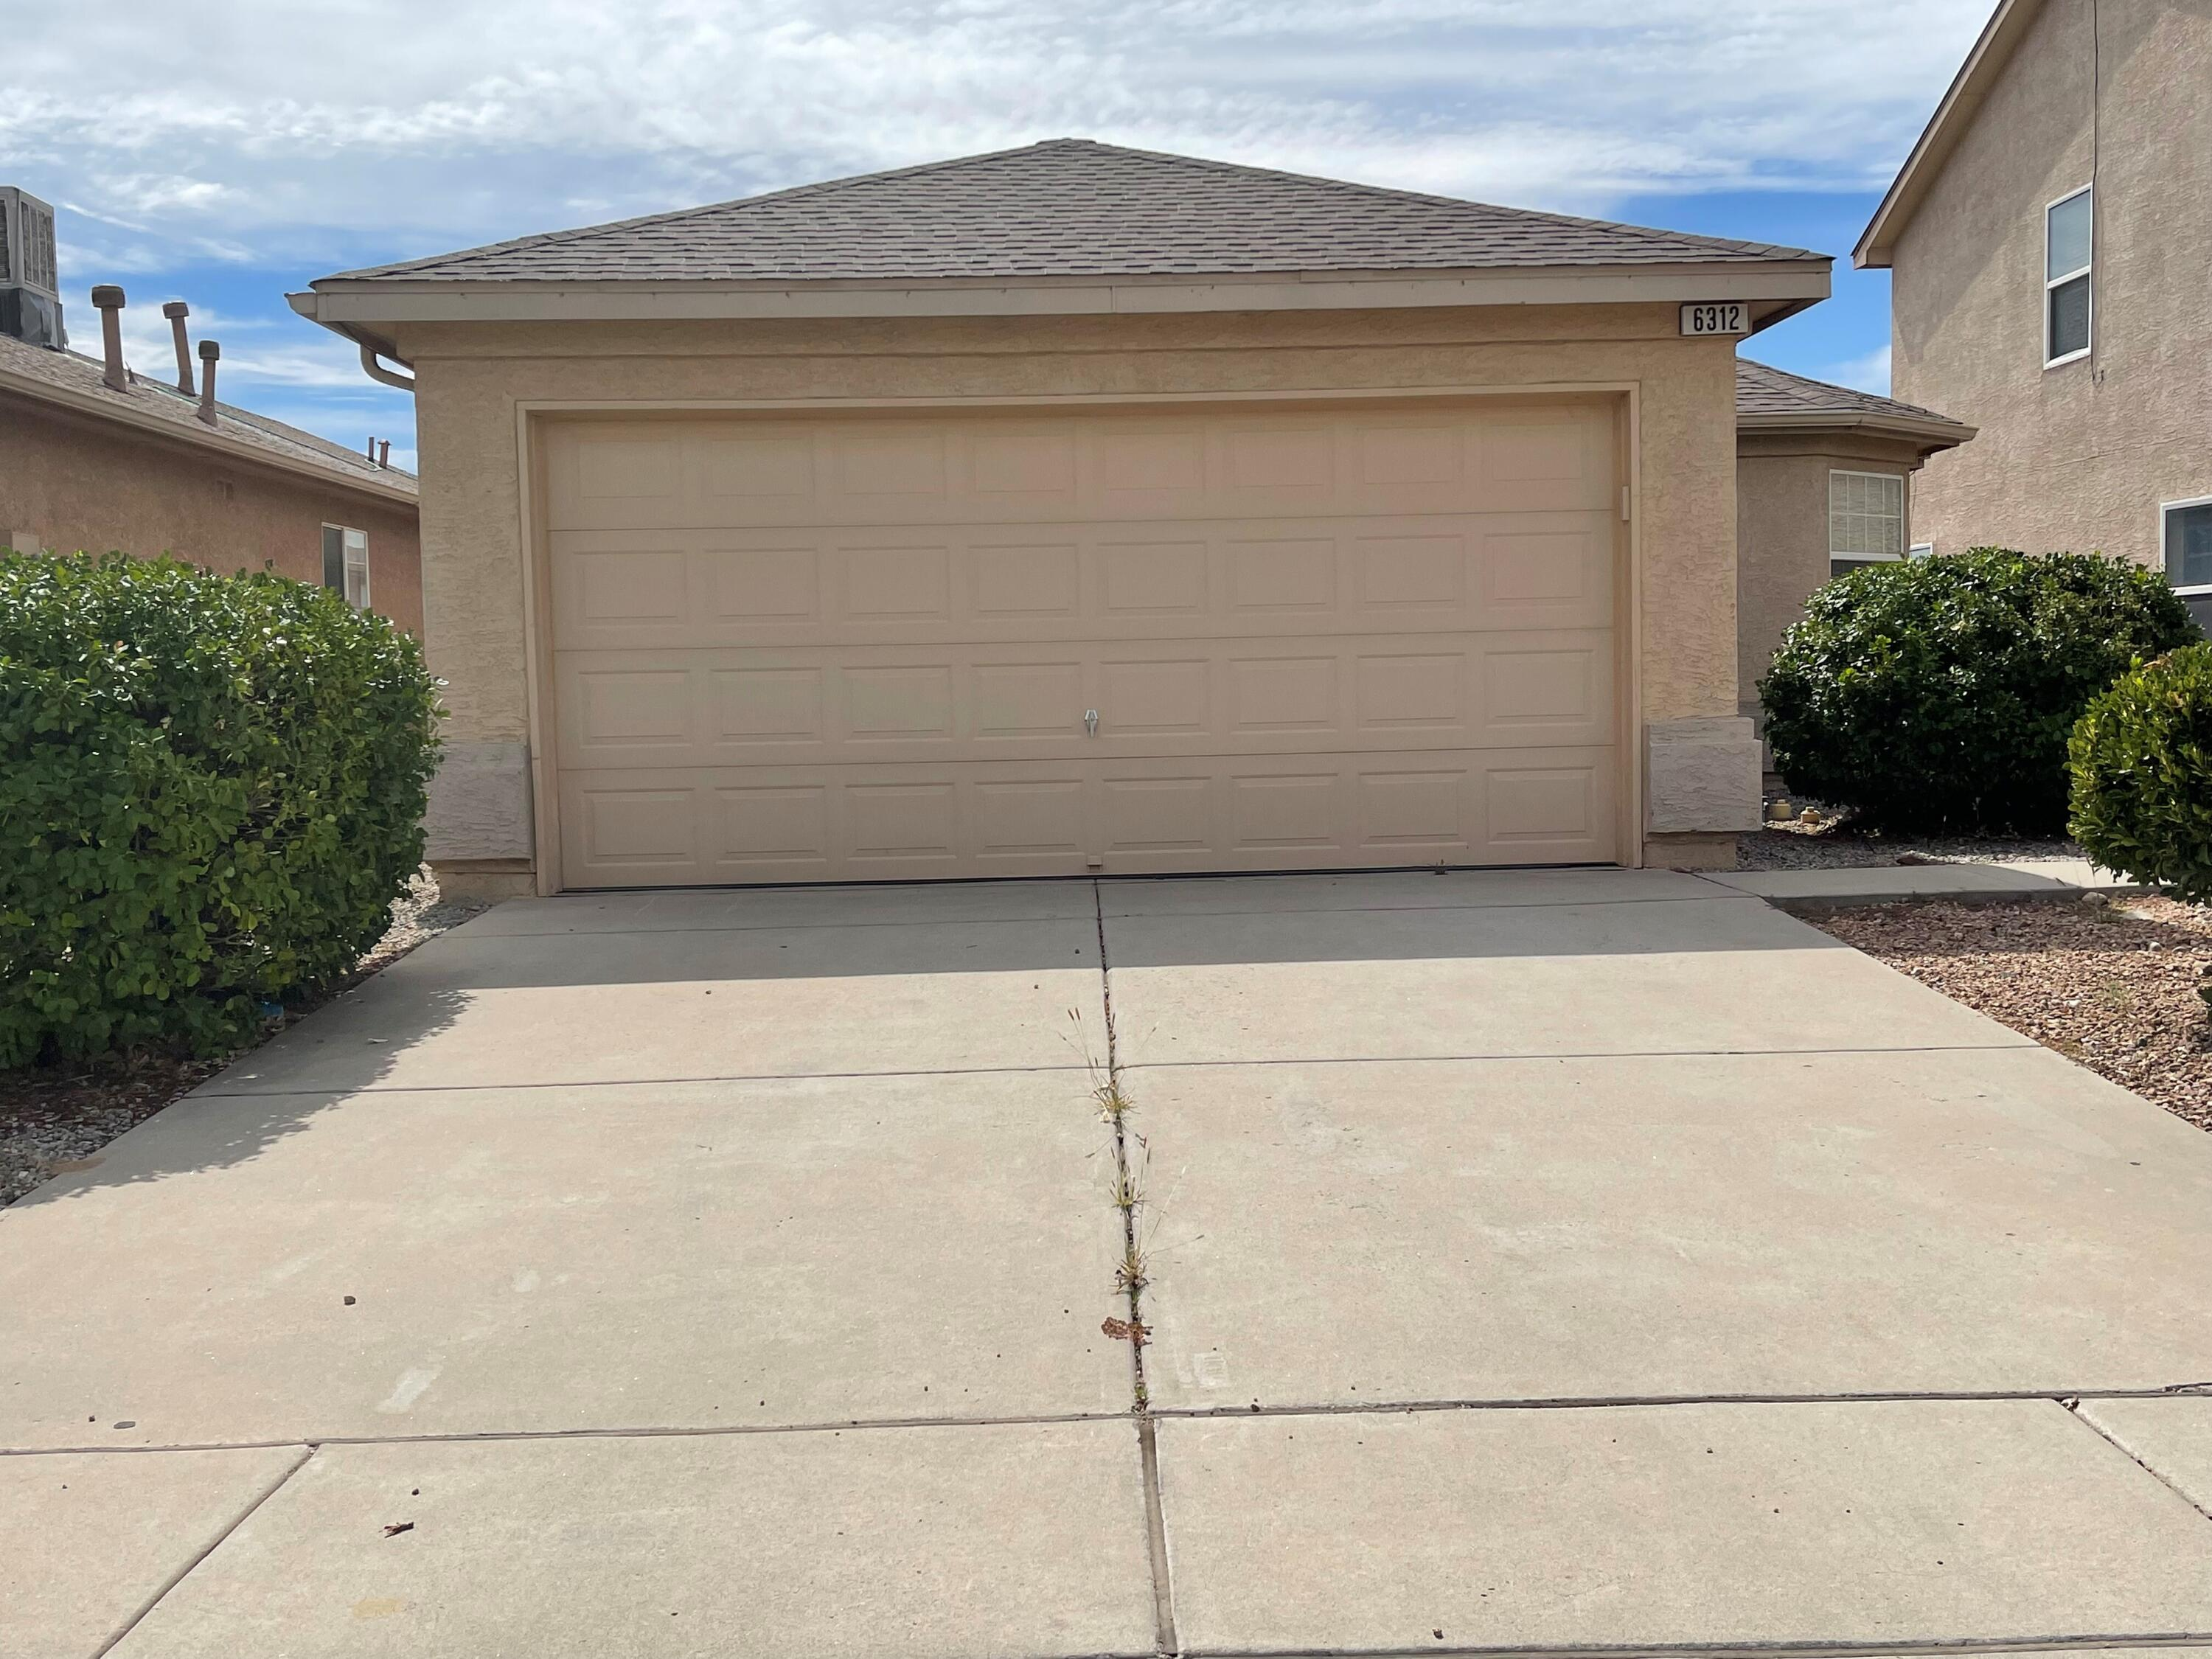 This house in the private gated community of Vittoria is charming.  It has vaulted ceilings, newer counter tops in the kitchen and a beautiful view of the Sandias from the back yard. It is conveniently located to Paseo del Norte and Rust Hospital.All inspections have been completed. The roof is being replaced due to hail damage and the hot water heater will be replaced prior to closing.  With the right offer the seller is willing to give a credit of $700 for a new swamp cooler.